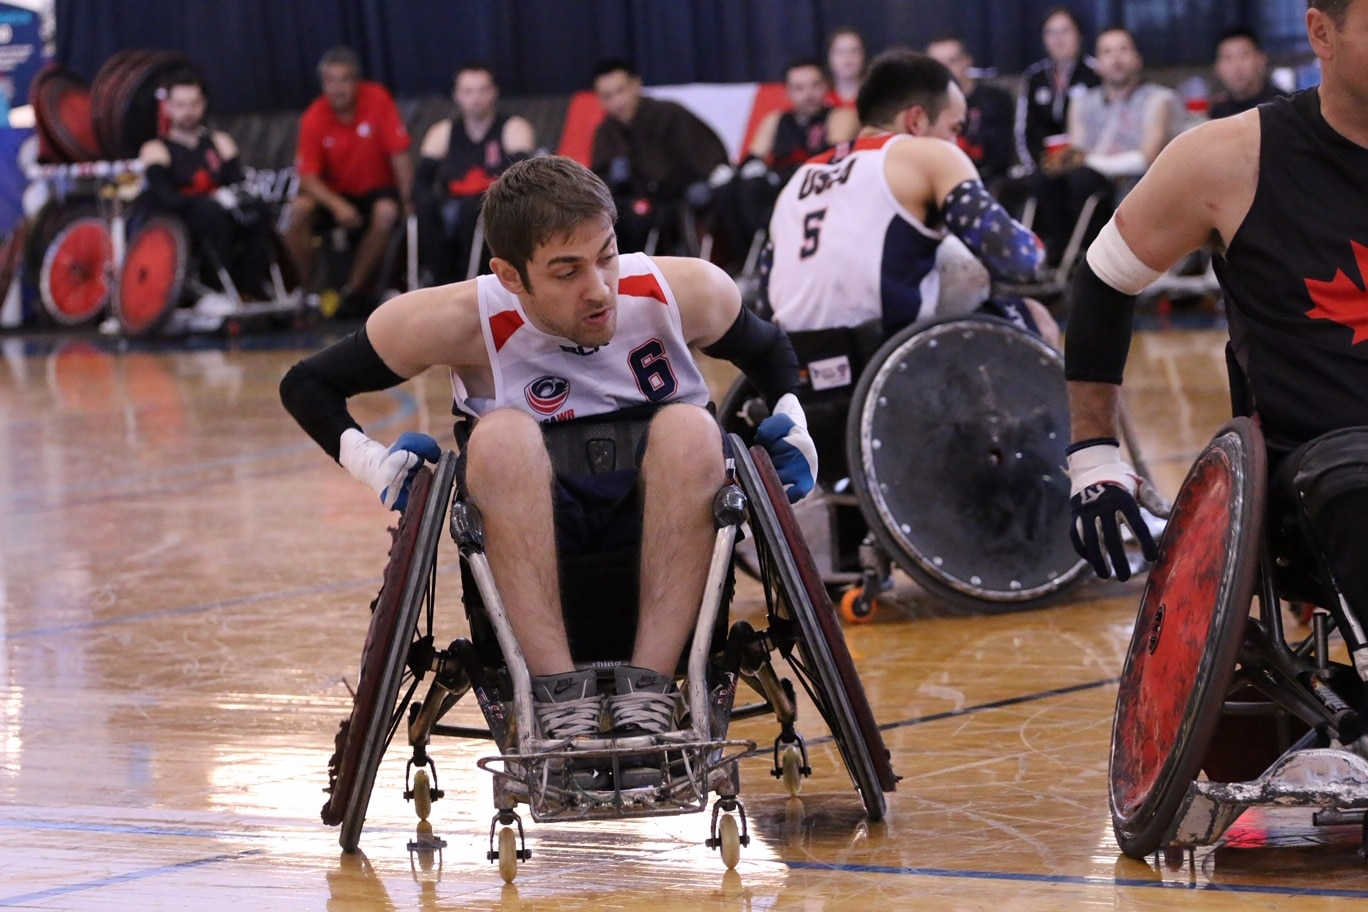 Jeff Butler wheels forward on a gym court in his rugby wheelchair. Other players are in the background.